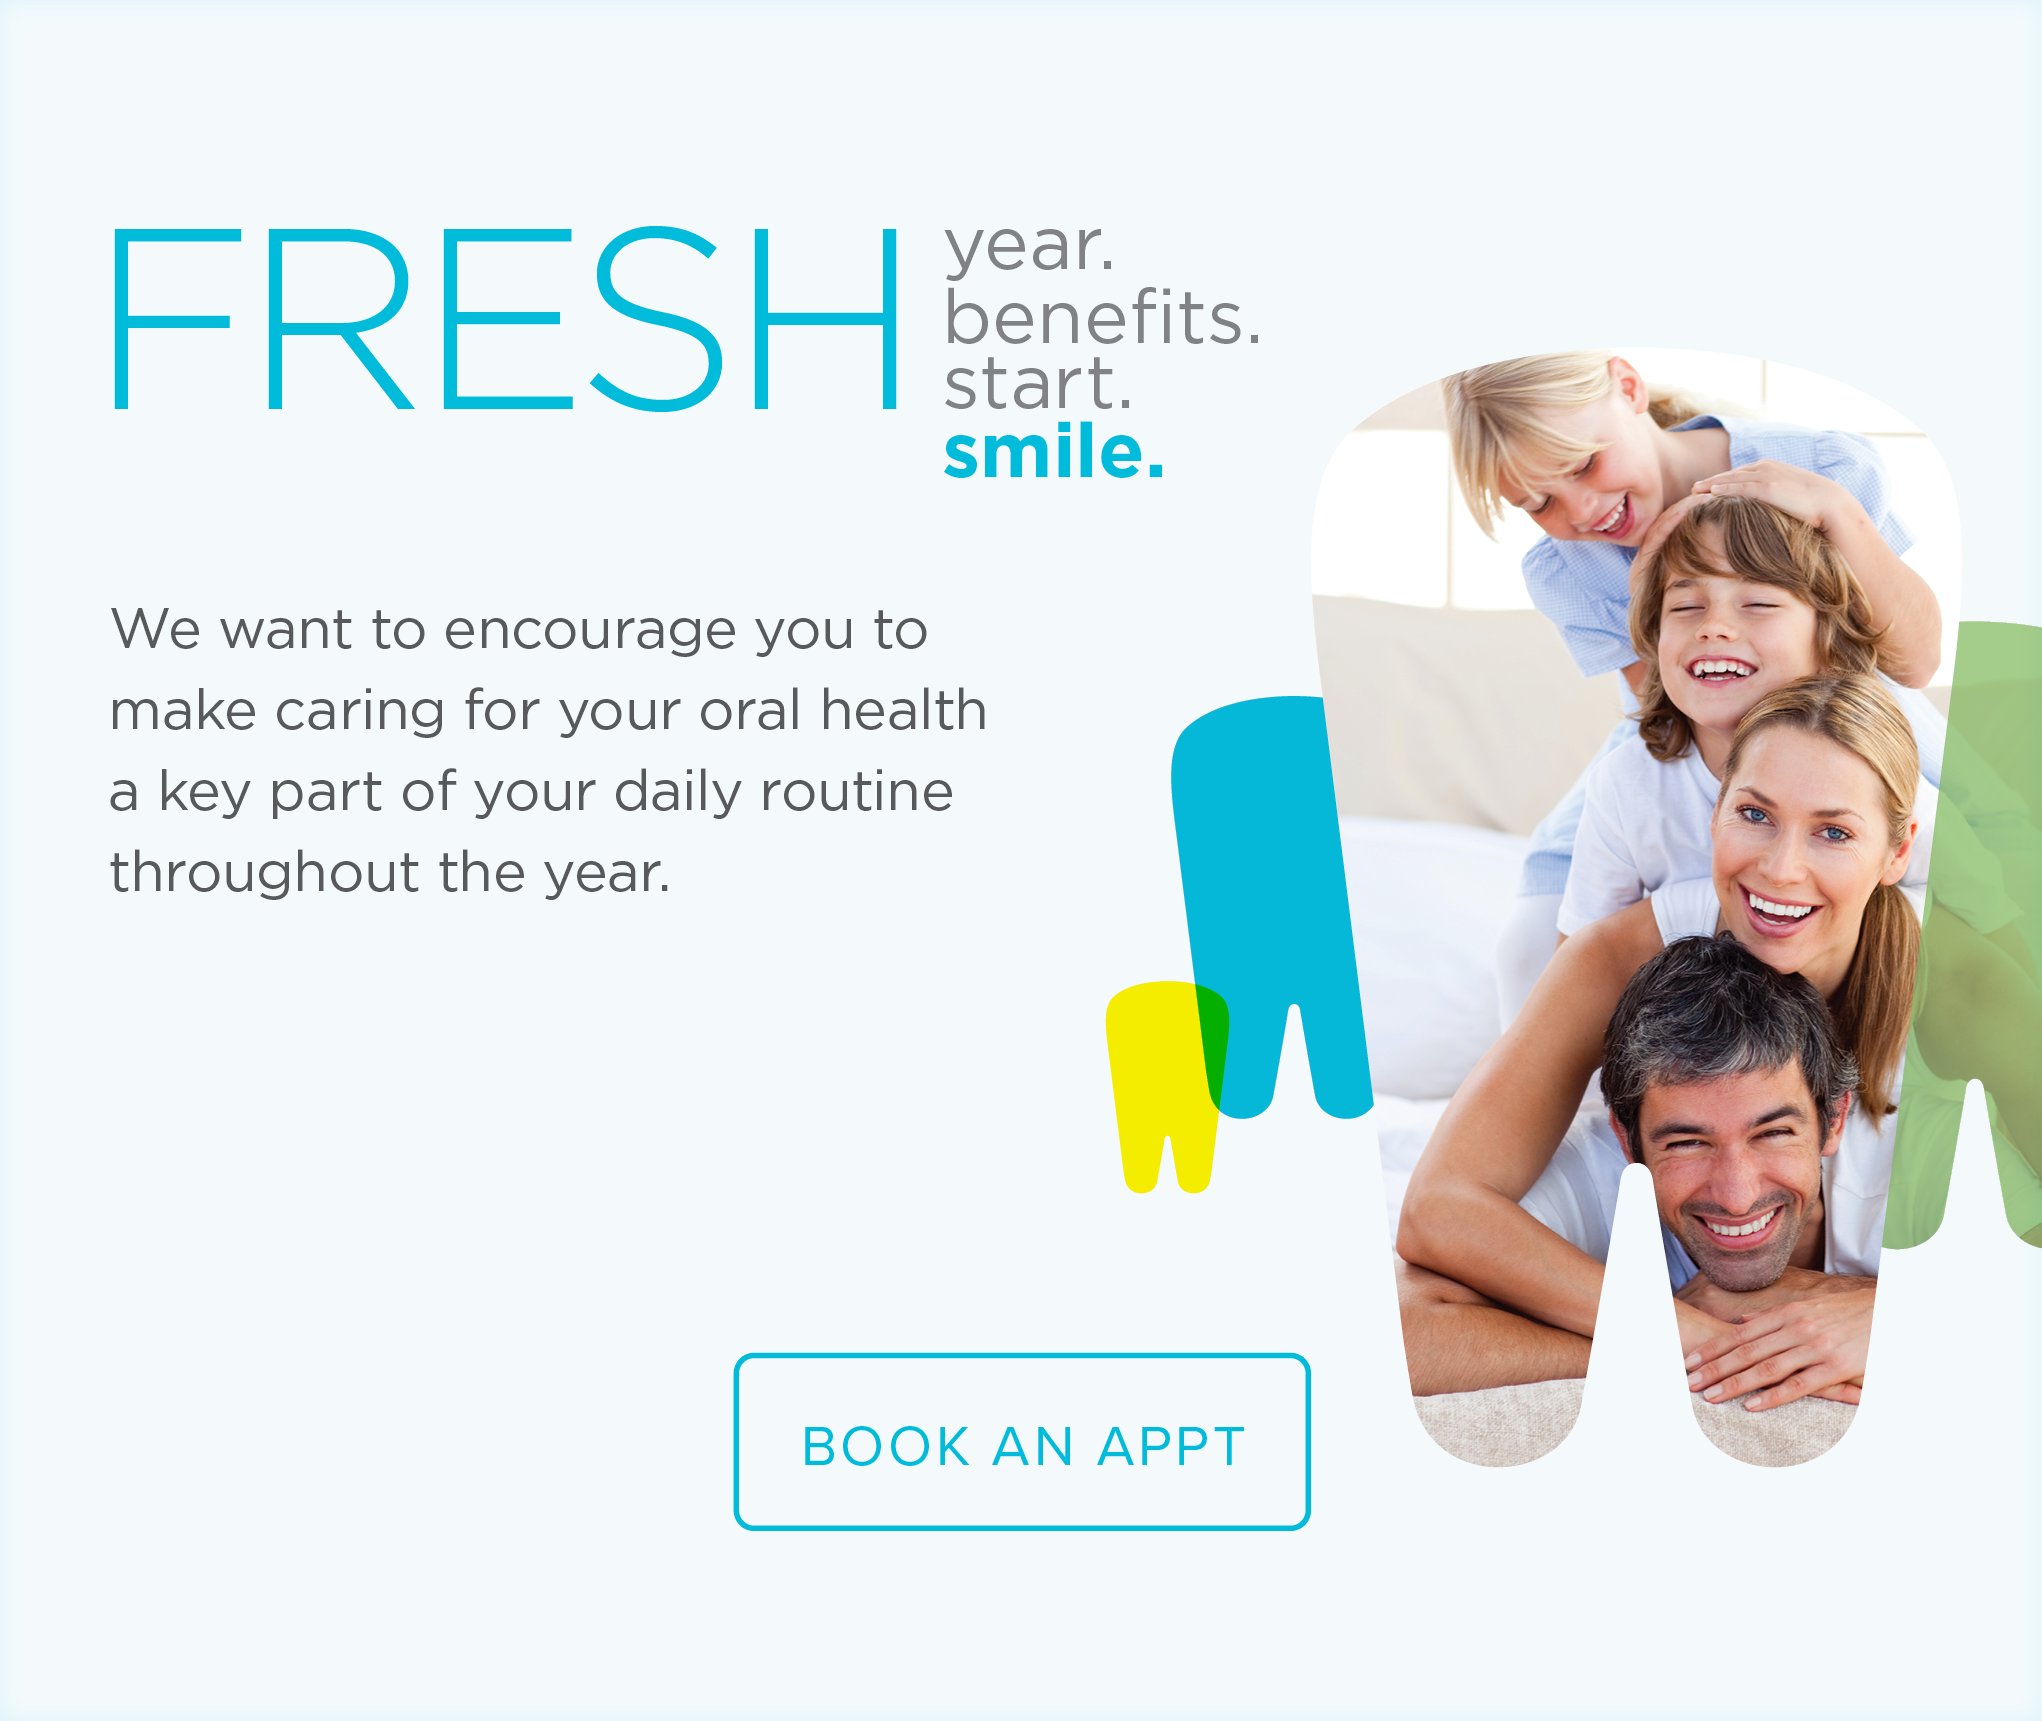 Stockdale Smiles Dentistry and Orthodontics - Make the Most of Your Benefits